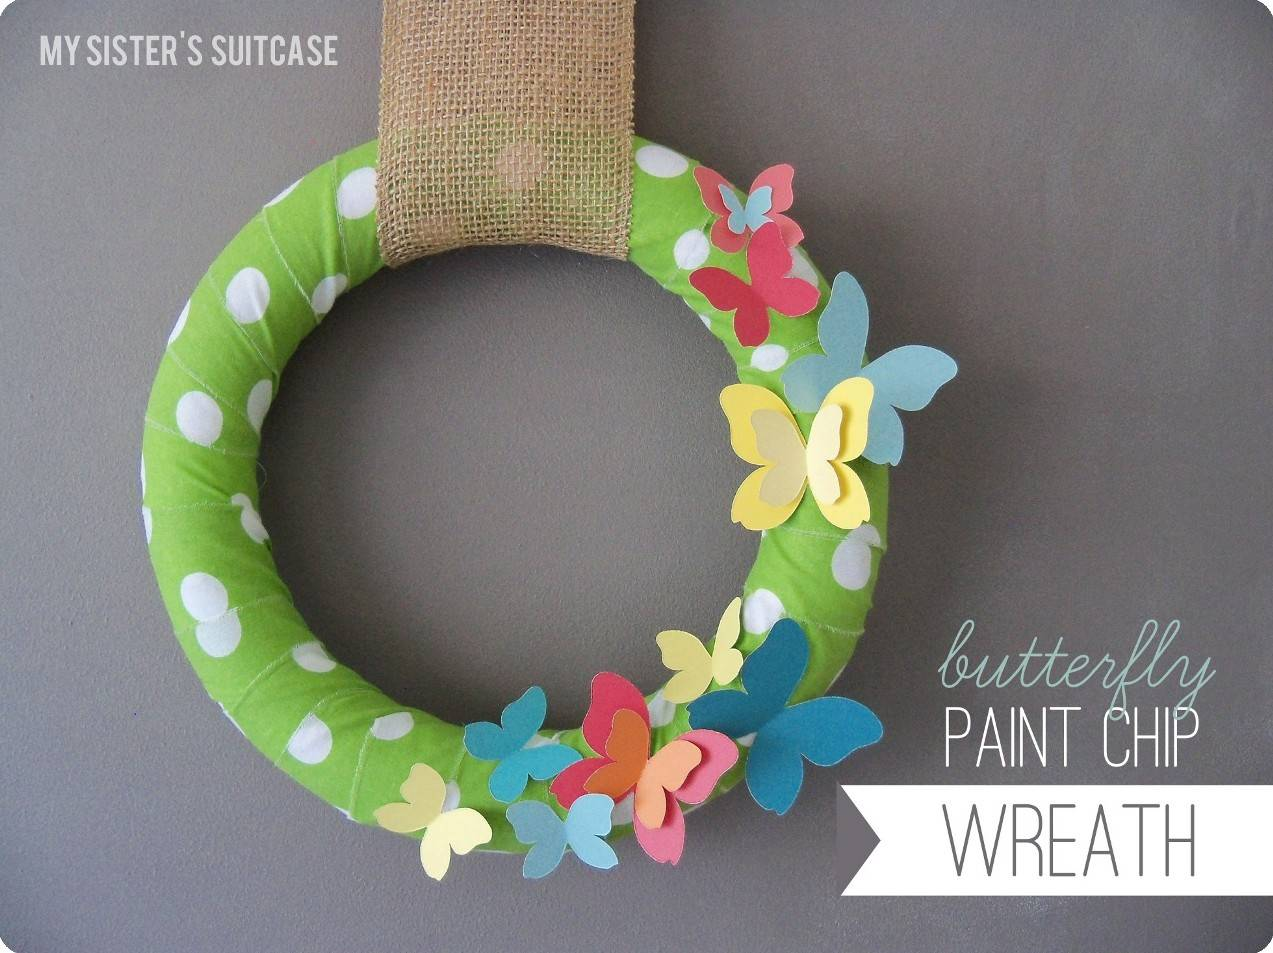 Butterfly Paint Chip Wreath Tutorial Guest Post Craftionary